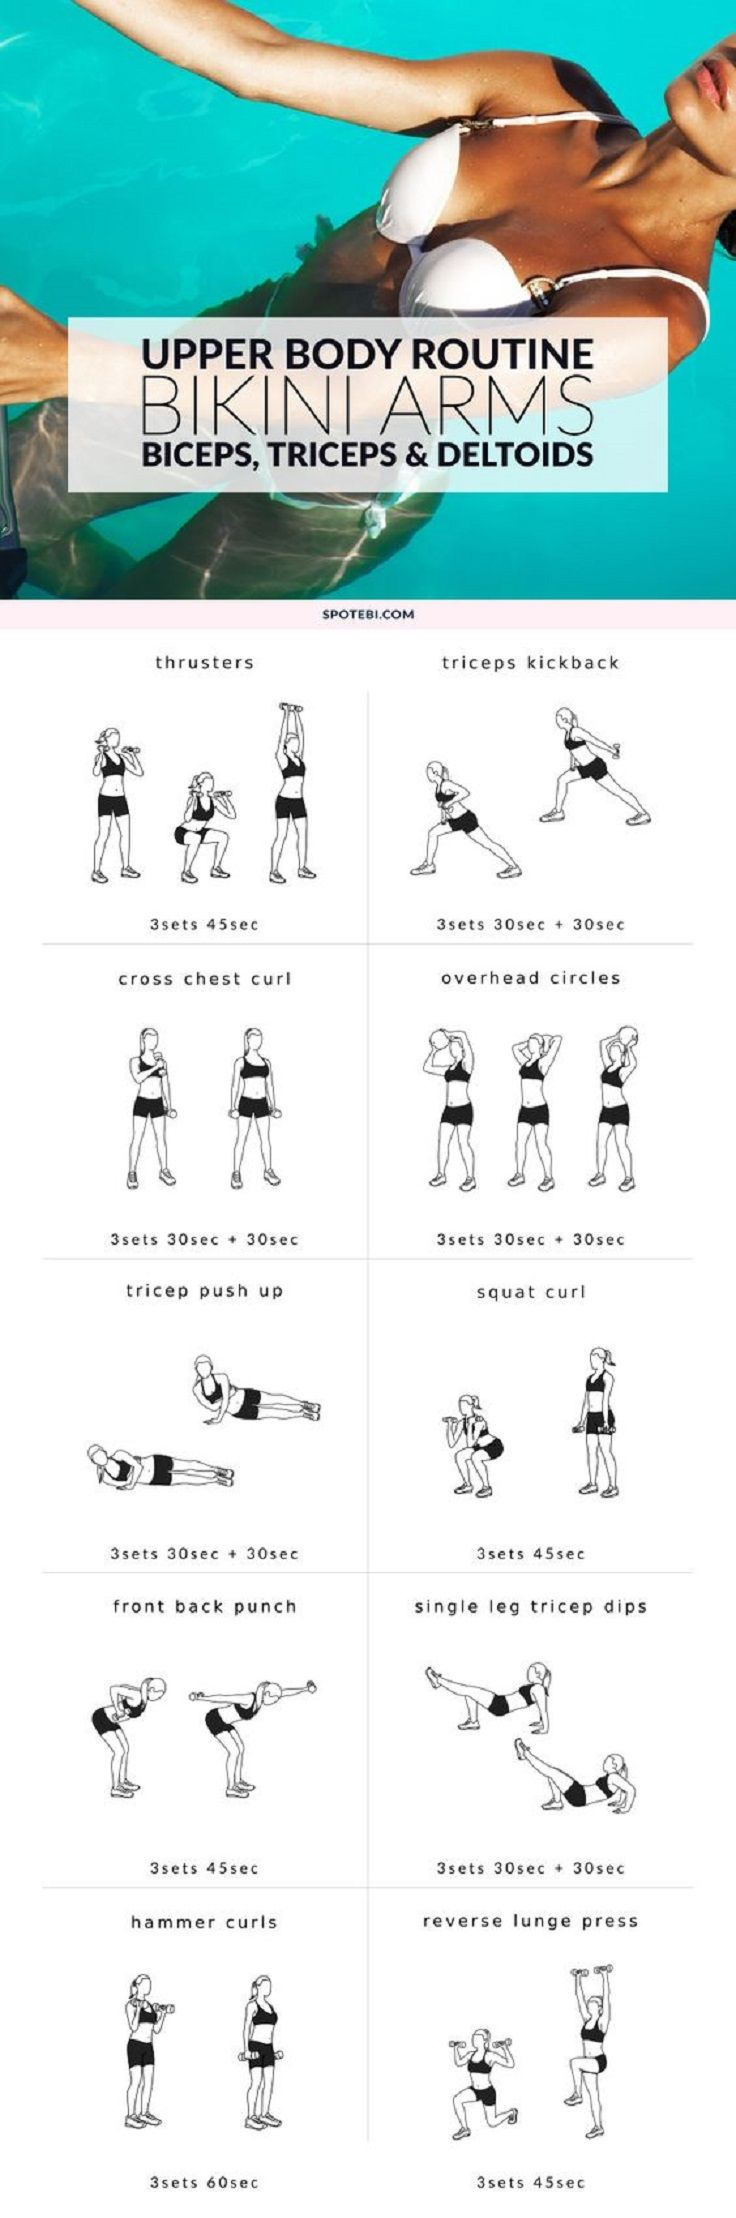 Upper Body Routine – Bikini Arms, Biceps, Triceps and Deltoids - 8 Best Workout Routines for Women to Affect Every Part of Your Body